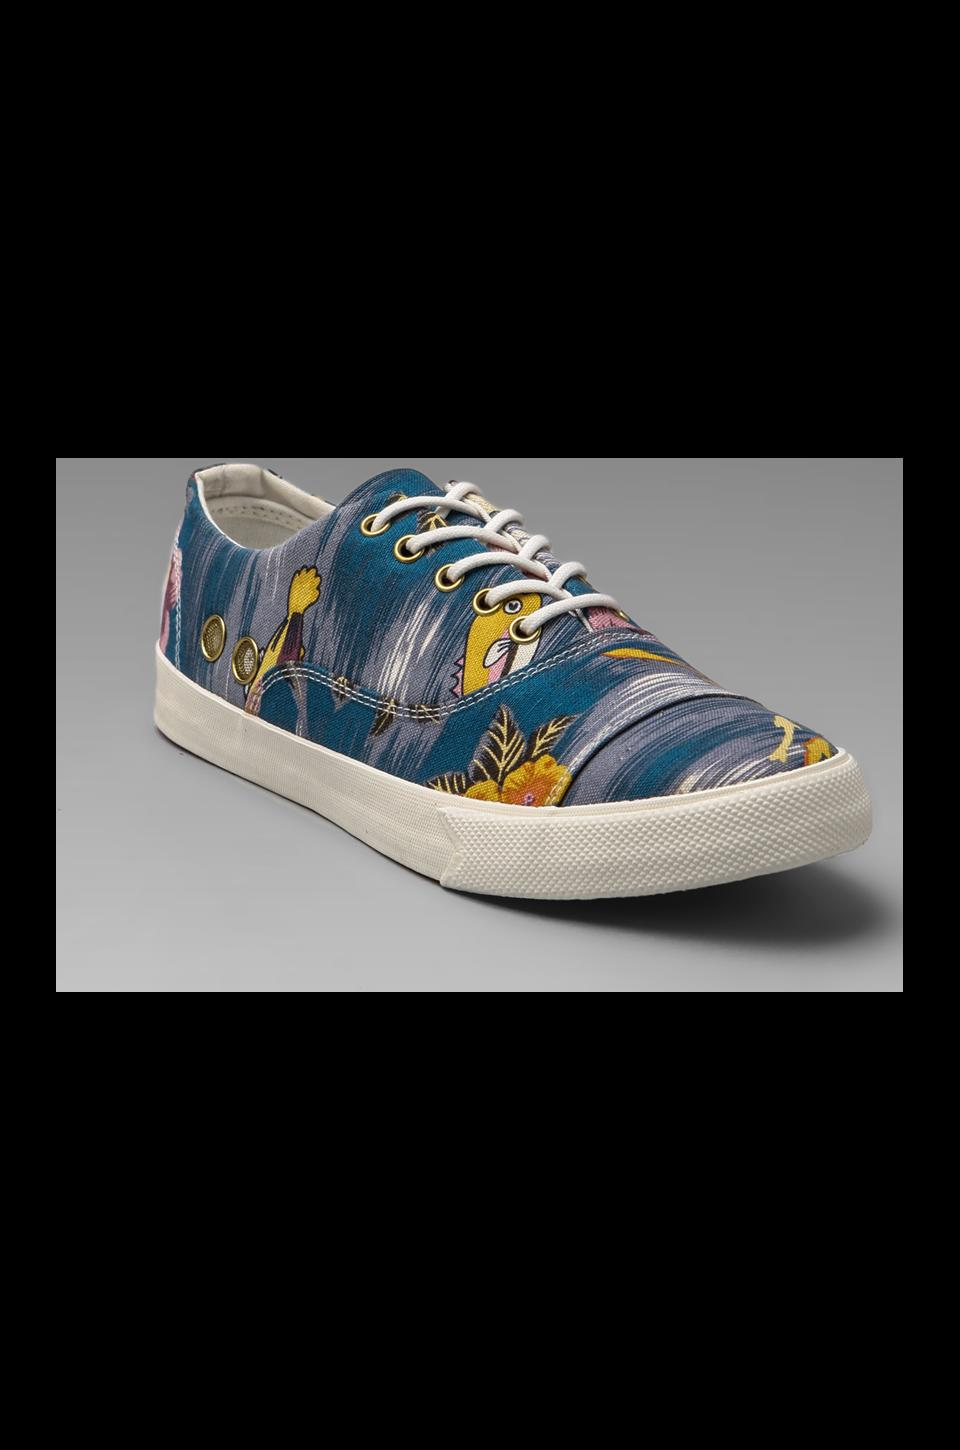 Gram 352G Cotton Canvas in Blue Aquarium